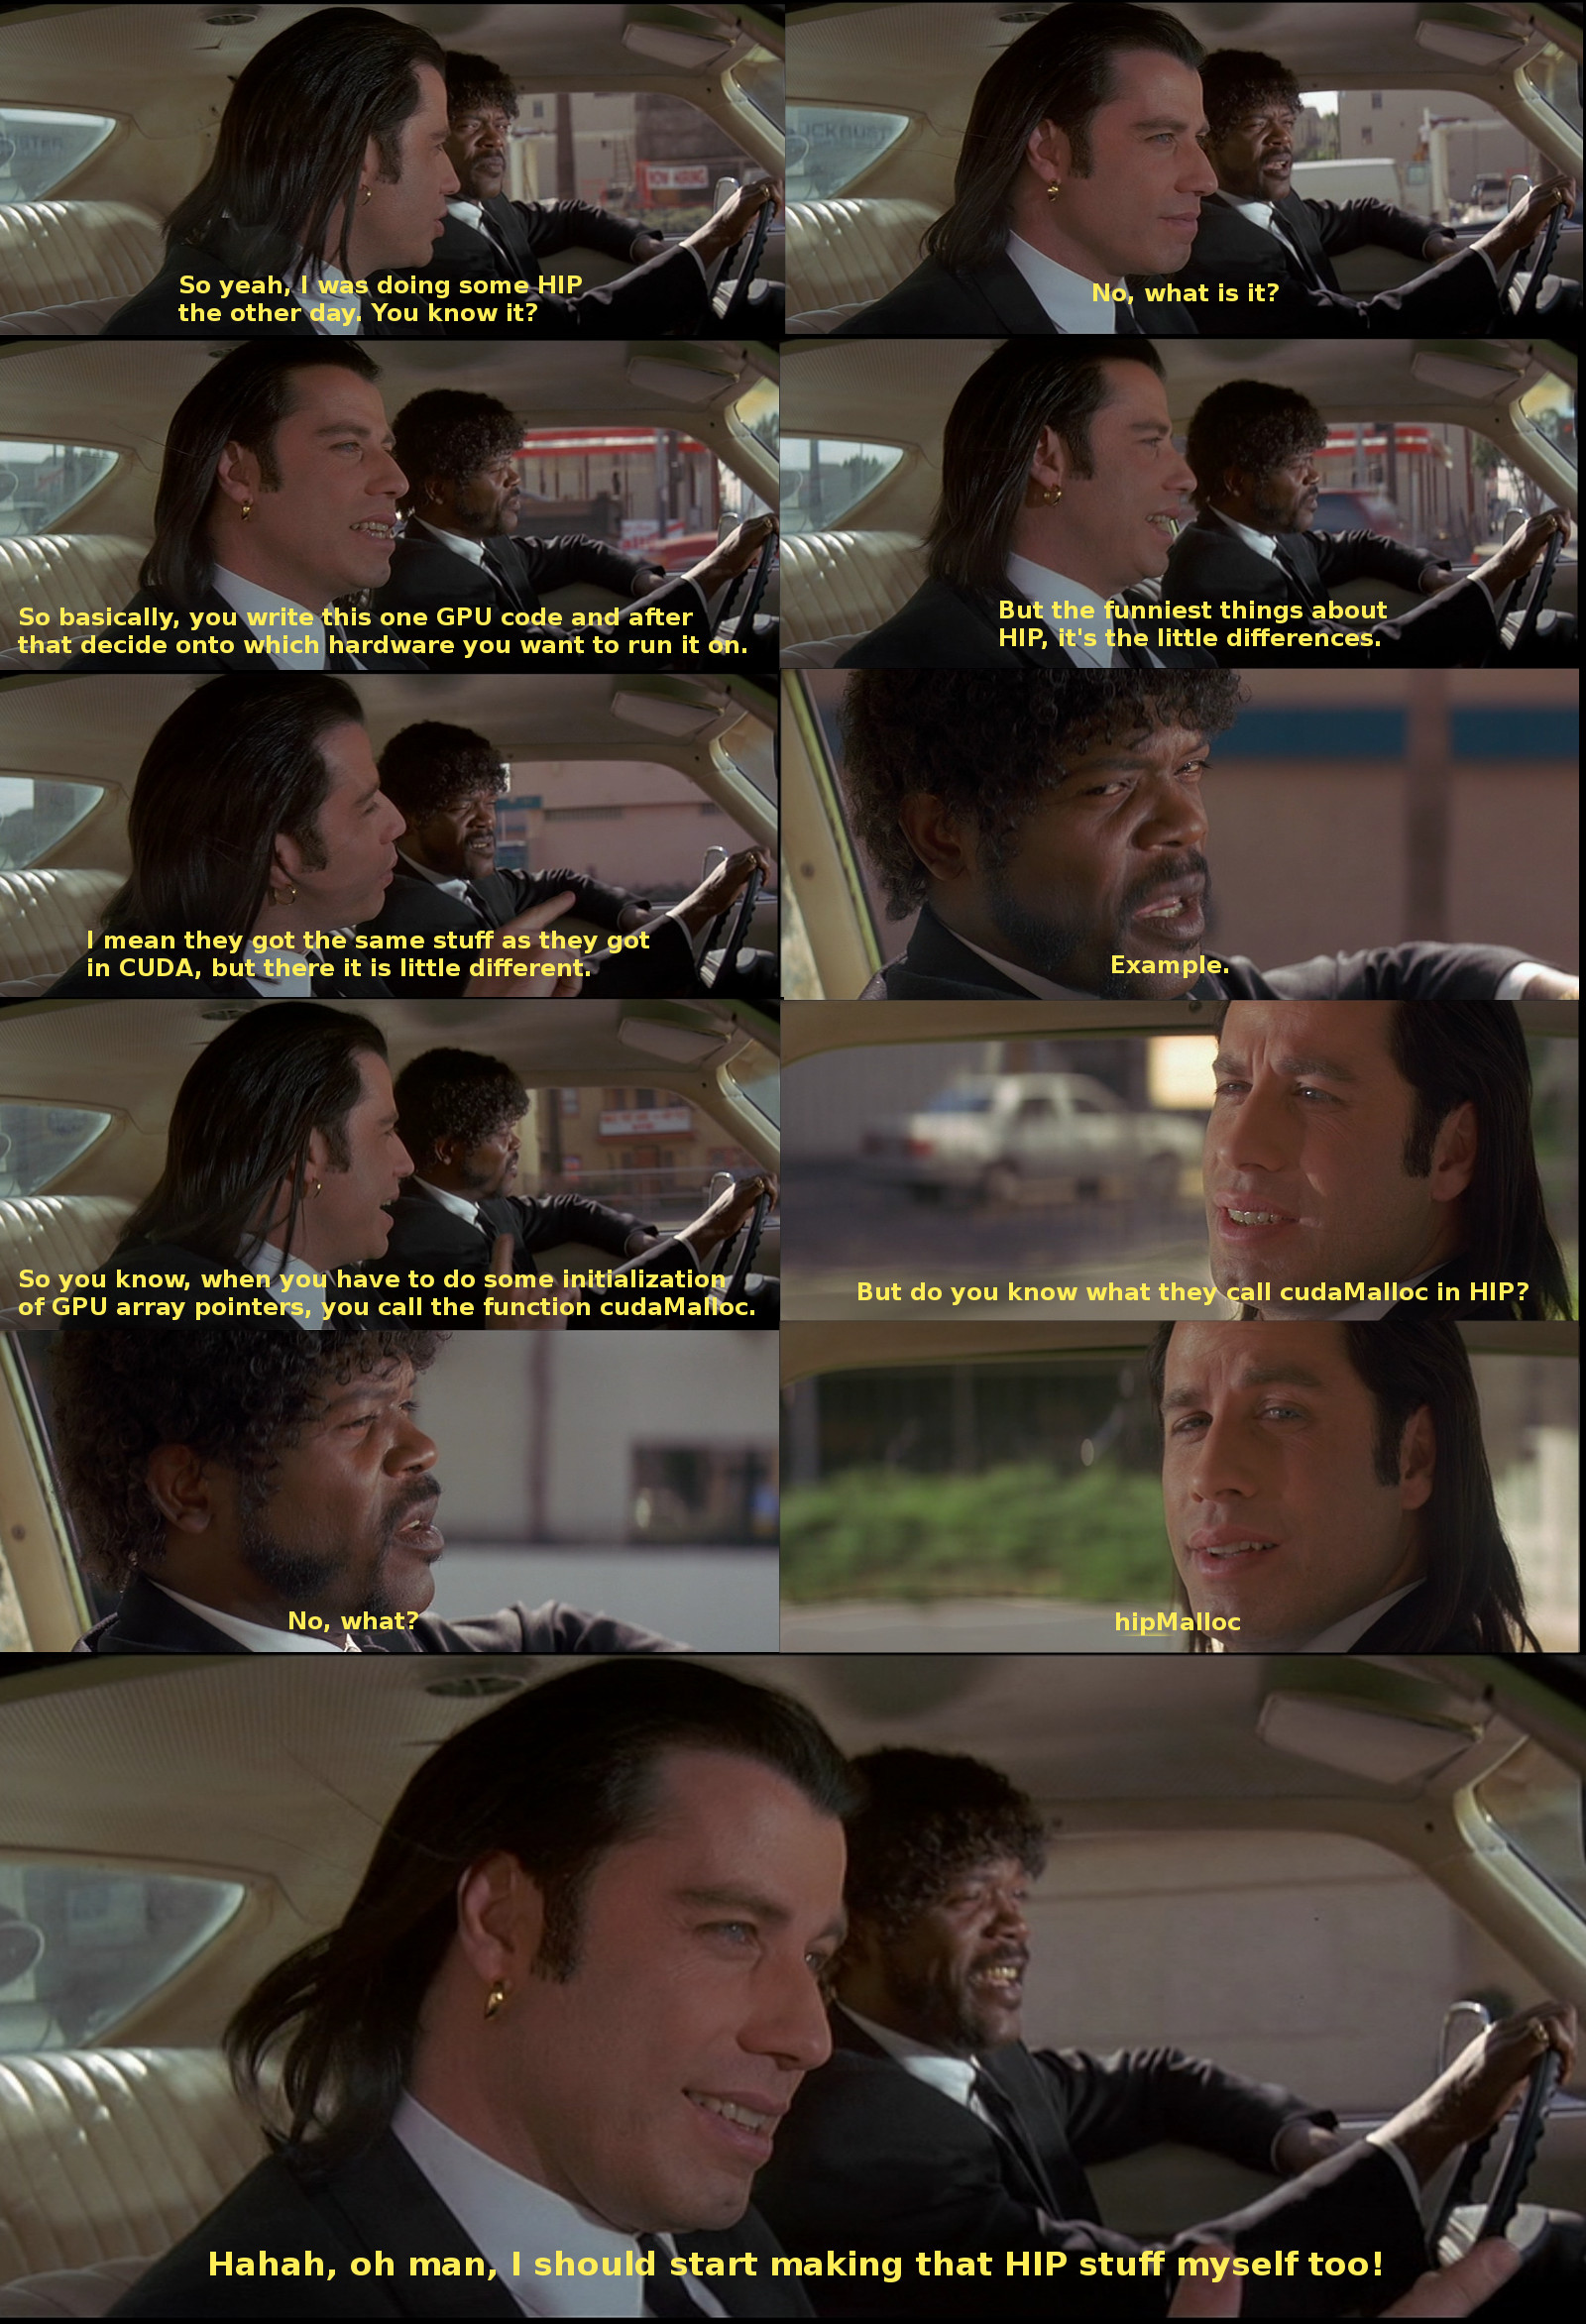 pulp fiction comic. If you're reading this text, you're missing out on the joke, because the image isn't shown